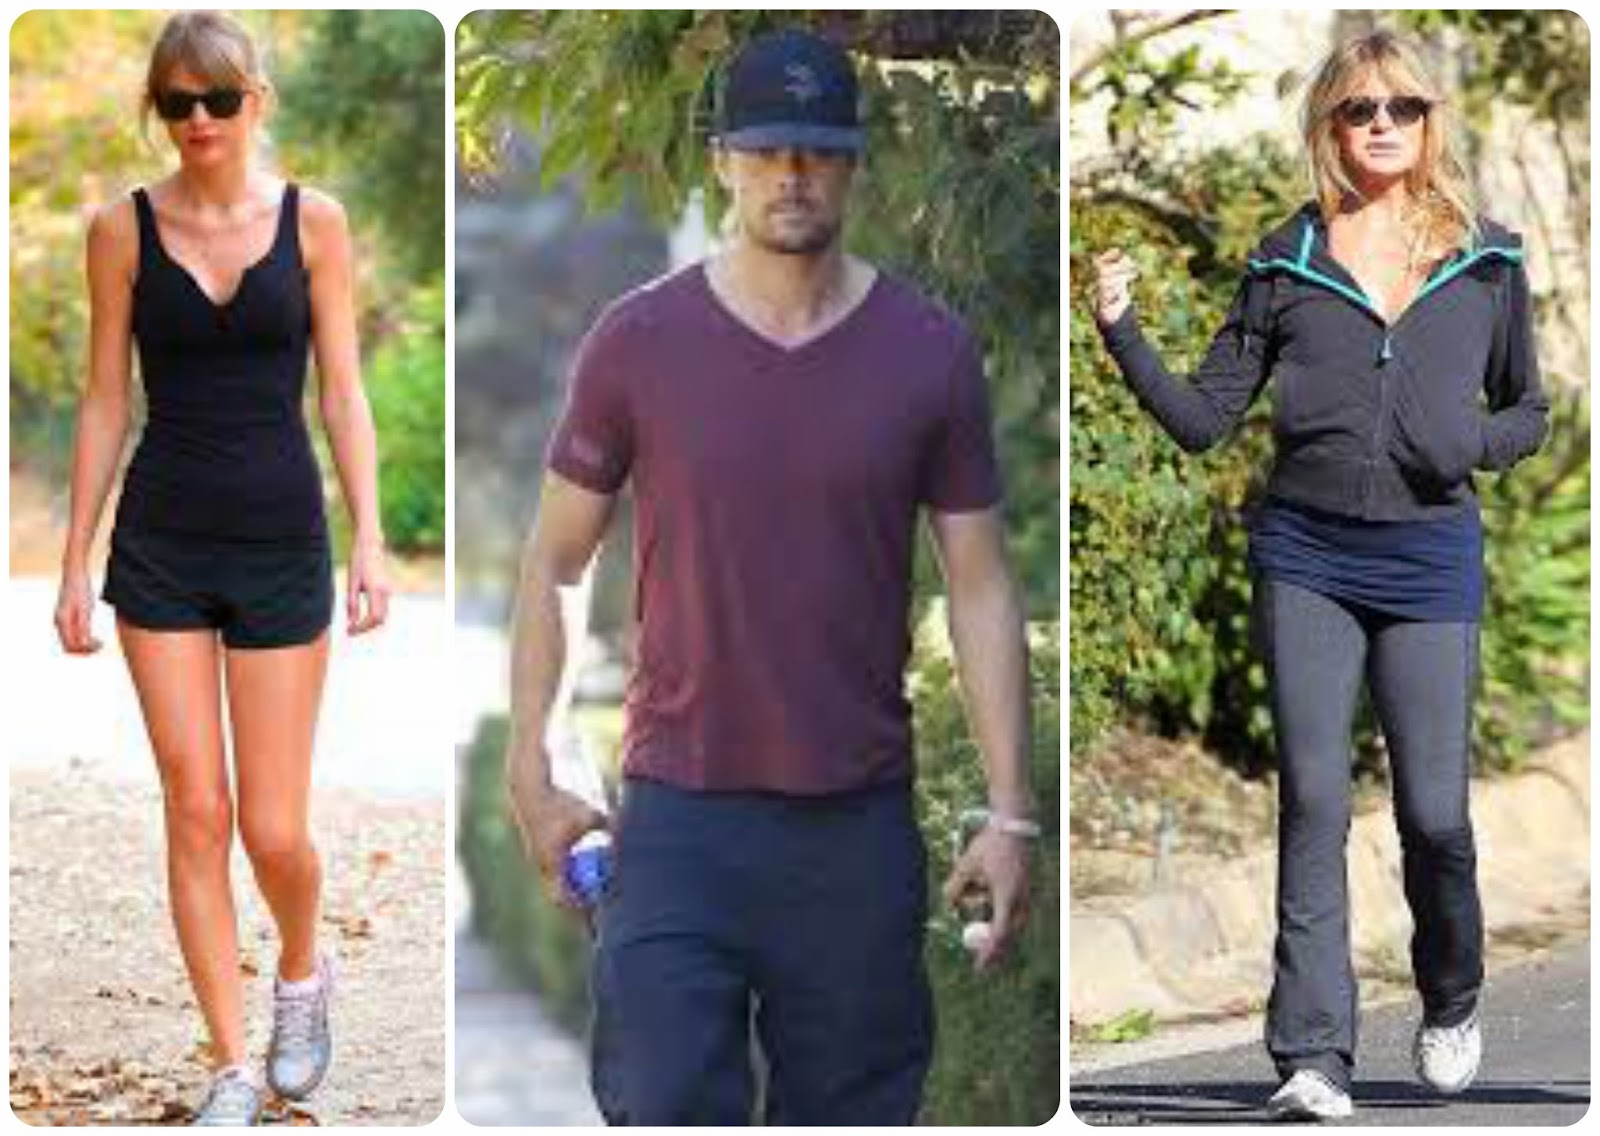 power walking - celebrities - taylor swift, josh duhamel, goldie hawn